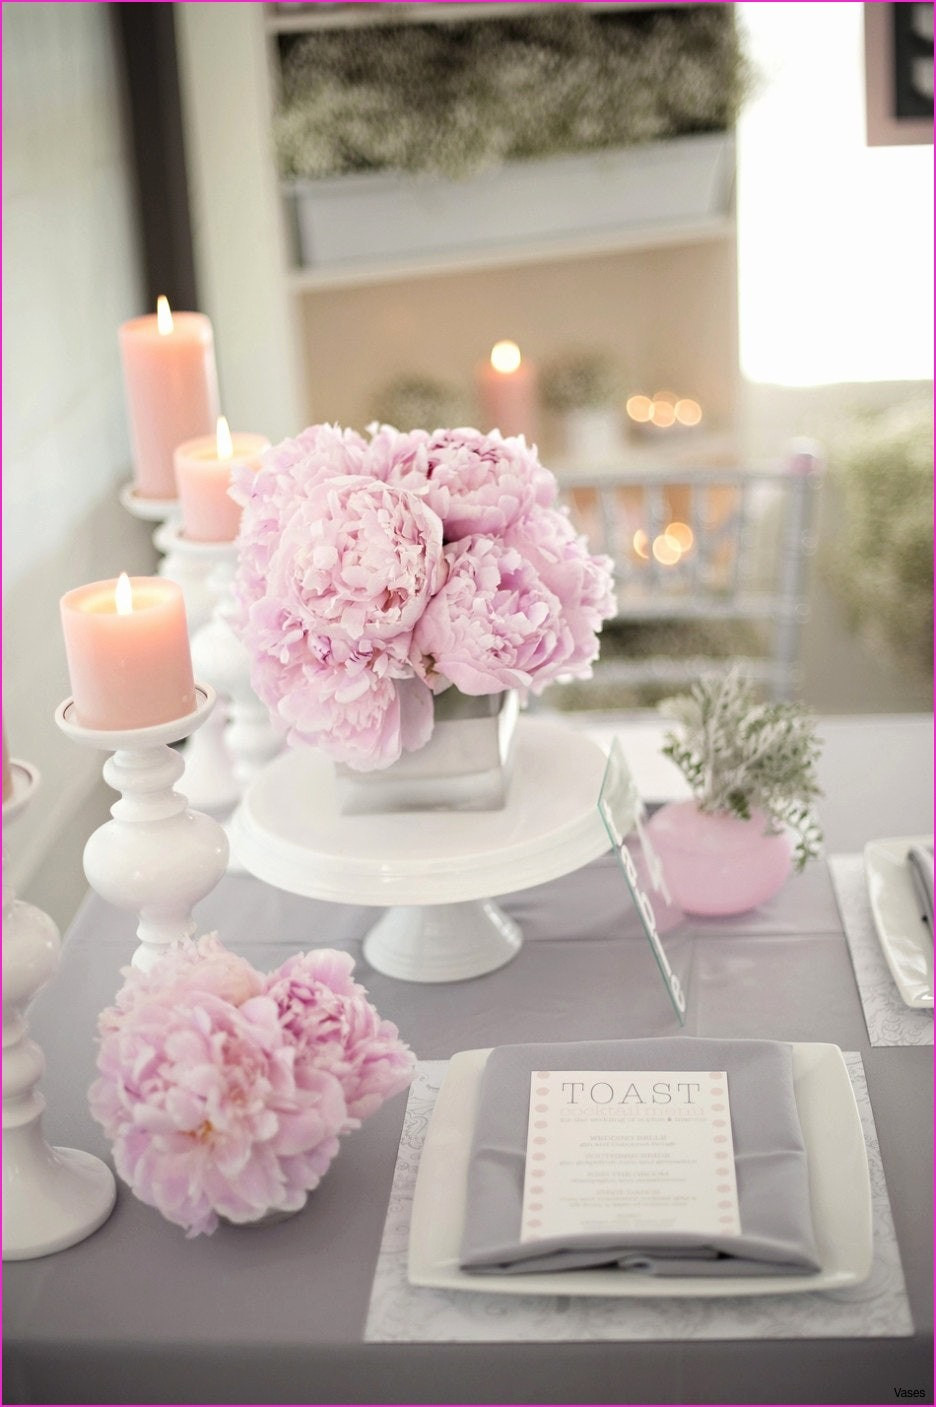 water vase centerpieces of decoration wedding ideas library bulk wedding decorations dsc h within decoration wedding ideas library bulk wedding decorations dsc h vases square centerpiece dsc i 0d